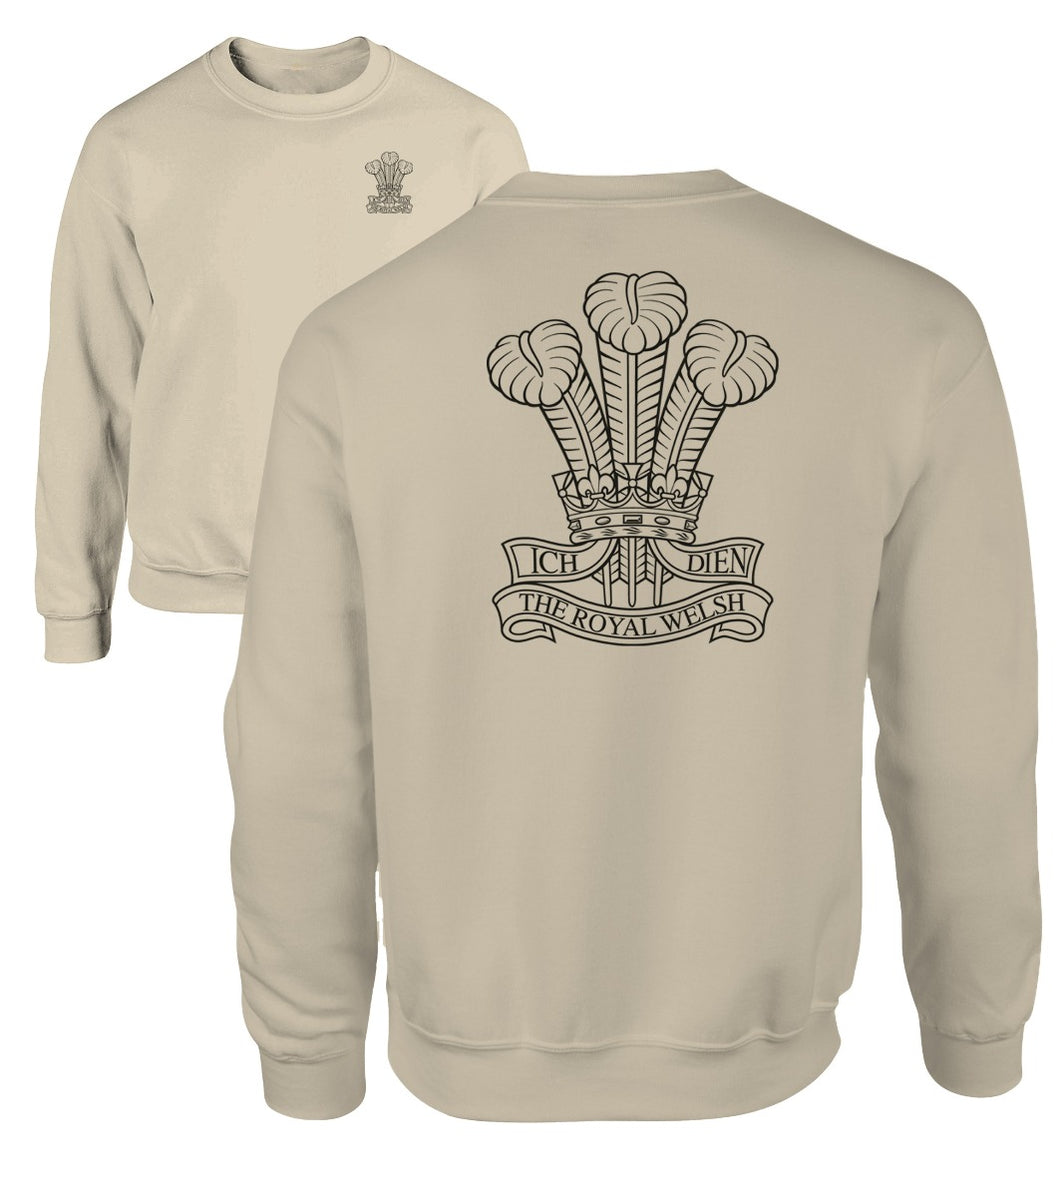 Double Printed Royal Welsh Sweatshirt